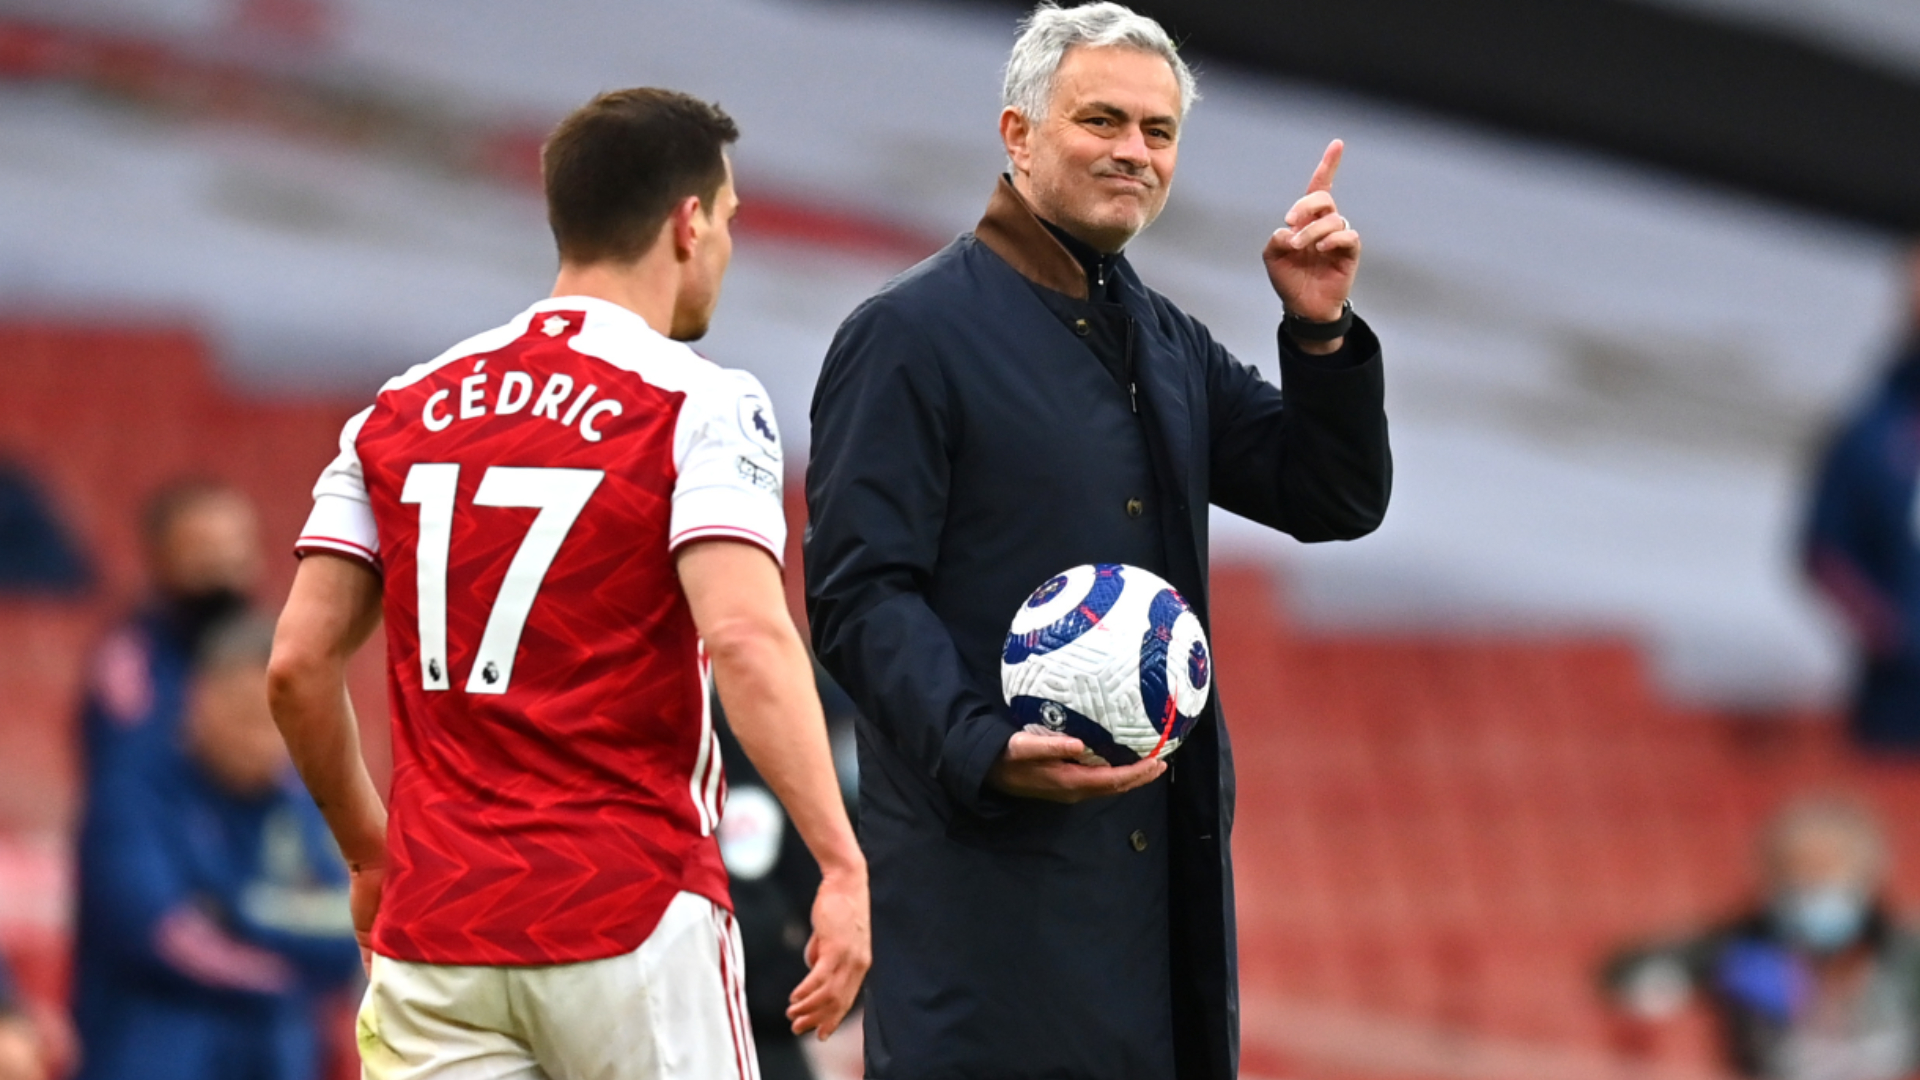 Oliver tops Mourinho table as West Ham can't stop missing – the Premier League weekend's quirky facts